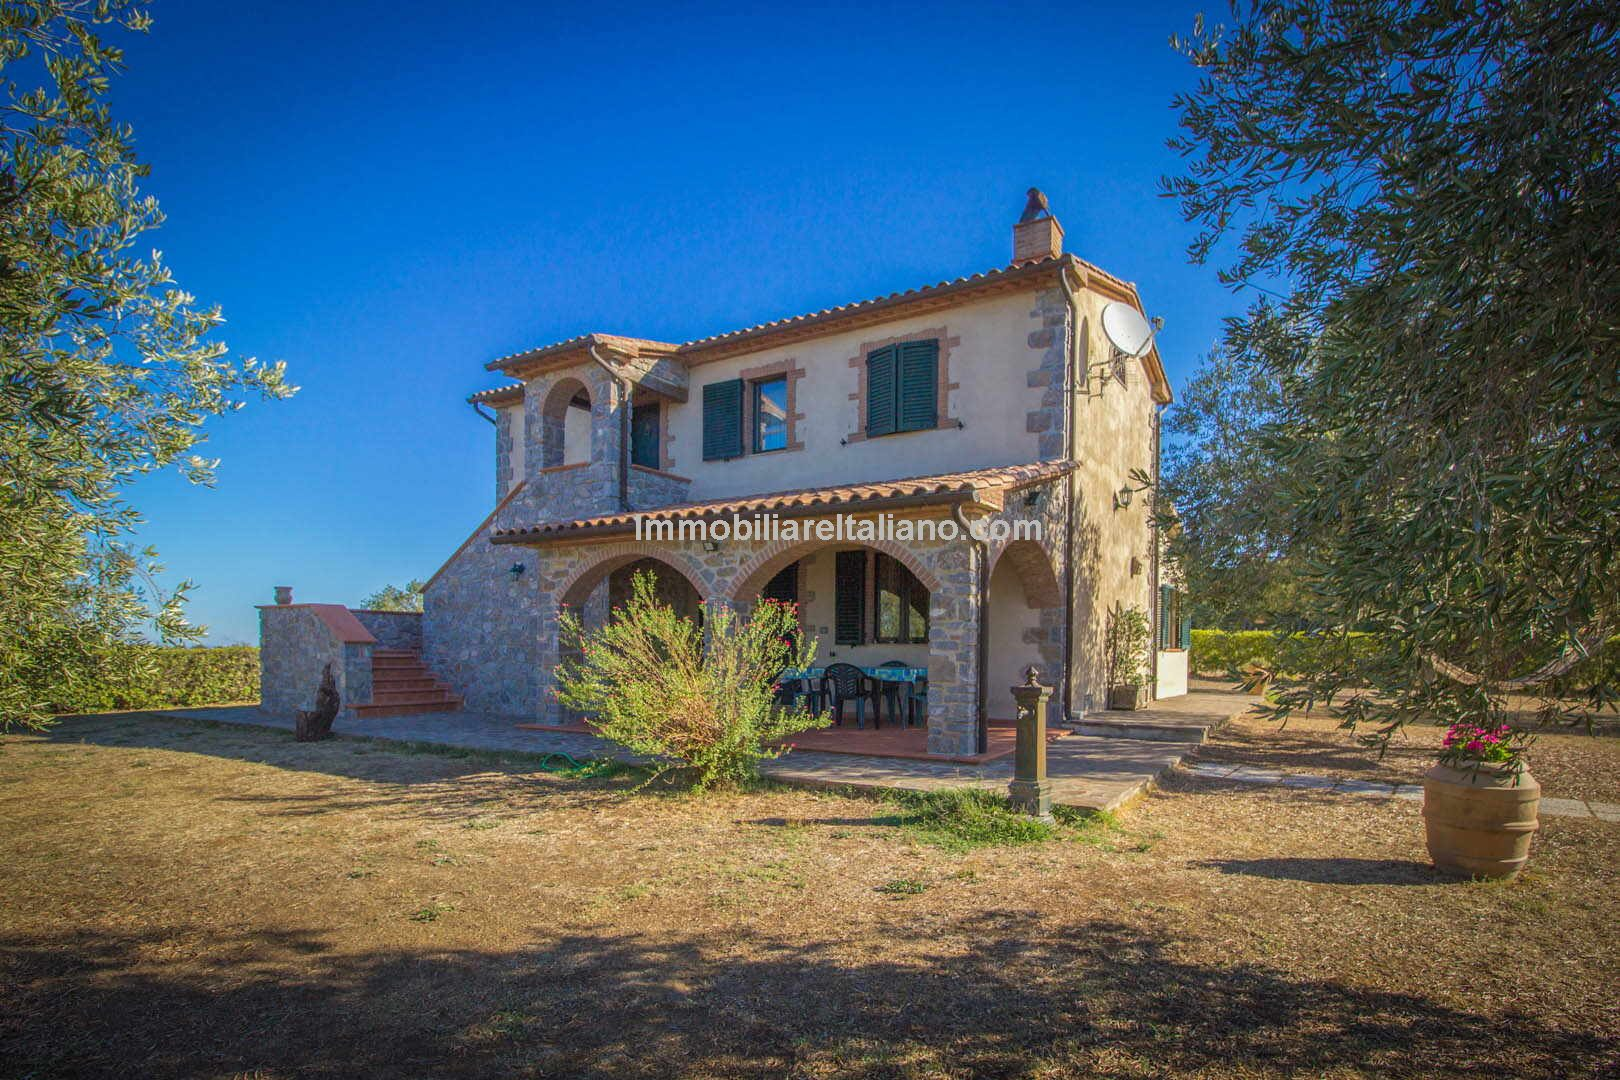 Italian Farmhouses For Sale Italian Coastal Property For Sale Tuscany Immobiliare Italiano